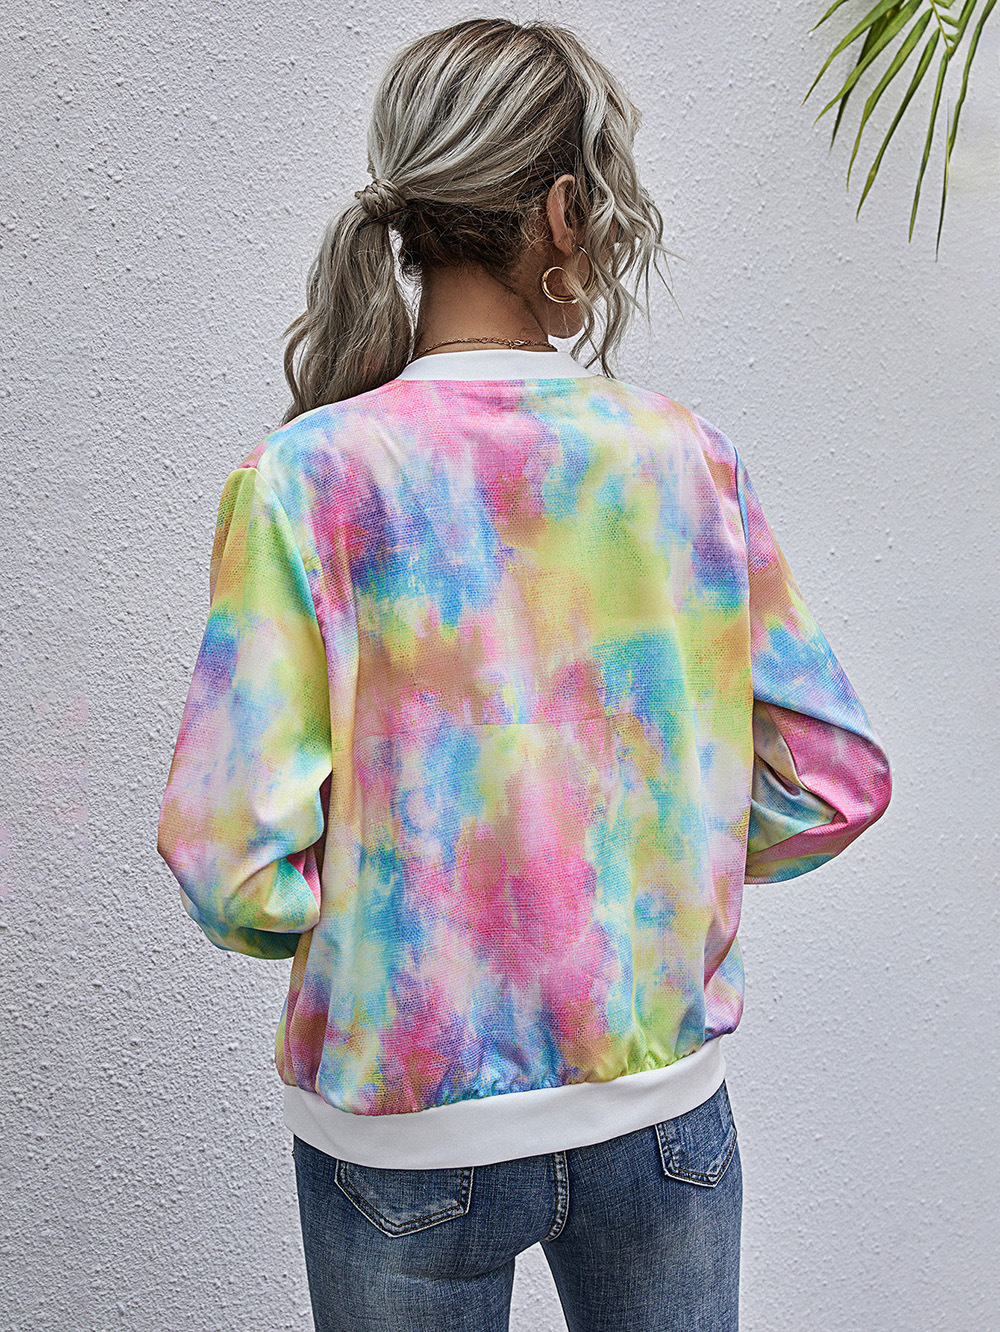 autumn and winter fashion beltless simple digital printing round neck casual tie-dye long-sleeved jacket  NSDF905